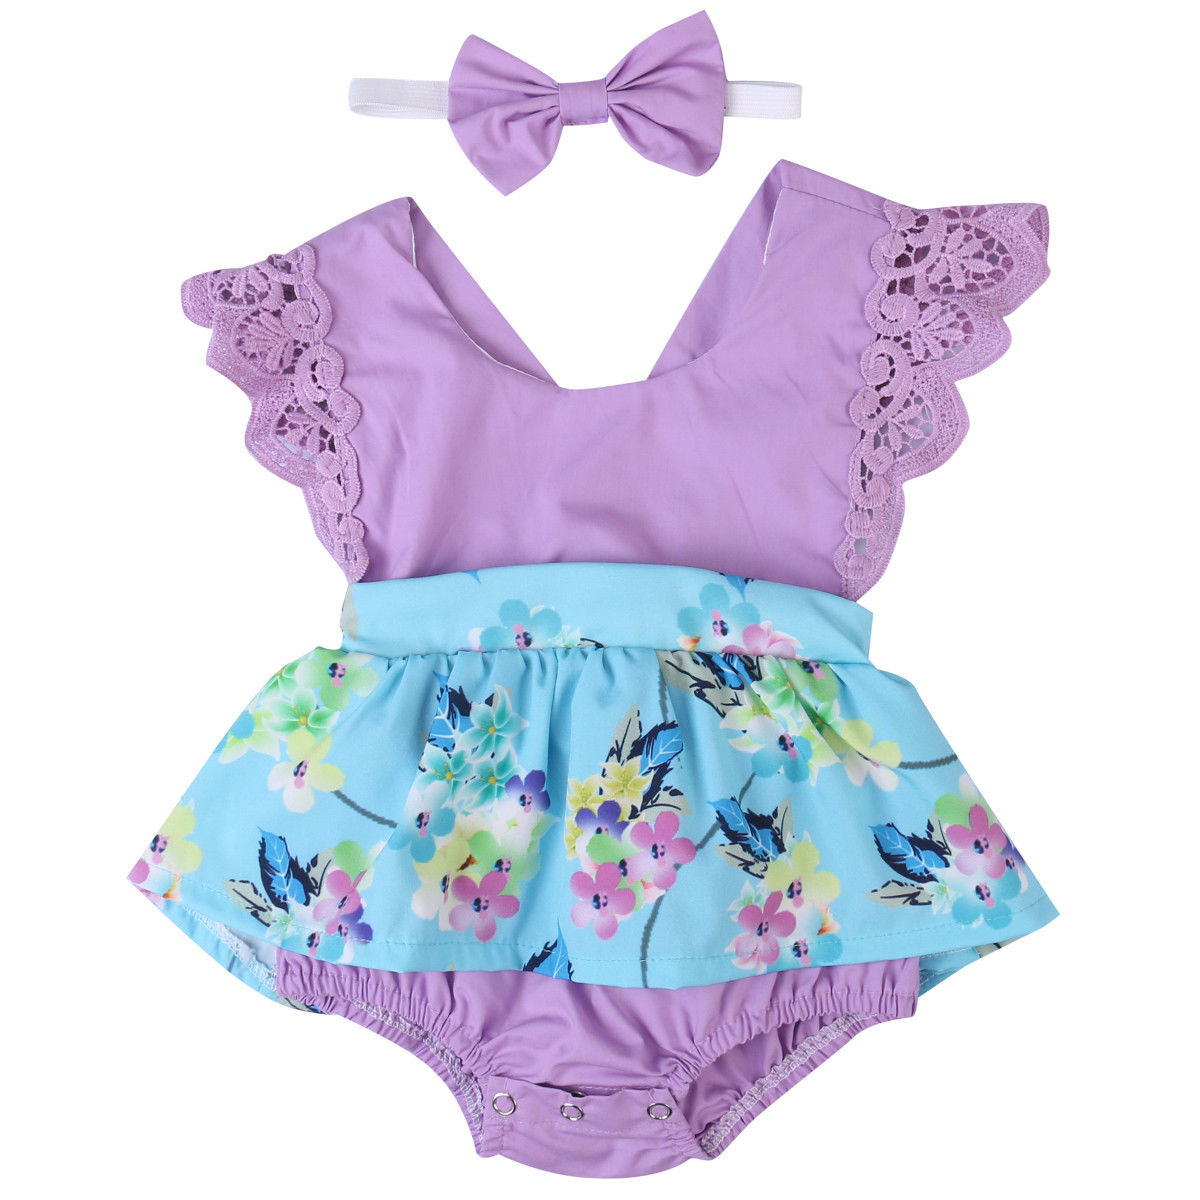 7fbb791f7e7d Detail Feedback Questions about Newborn KIDS Baby Girls Clothes ...